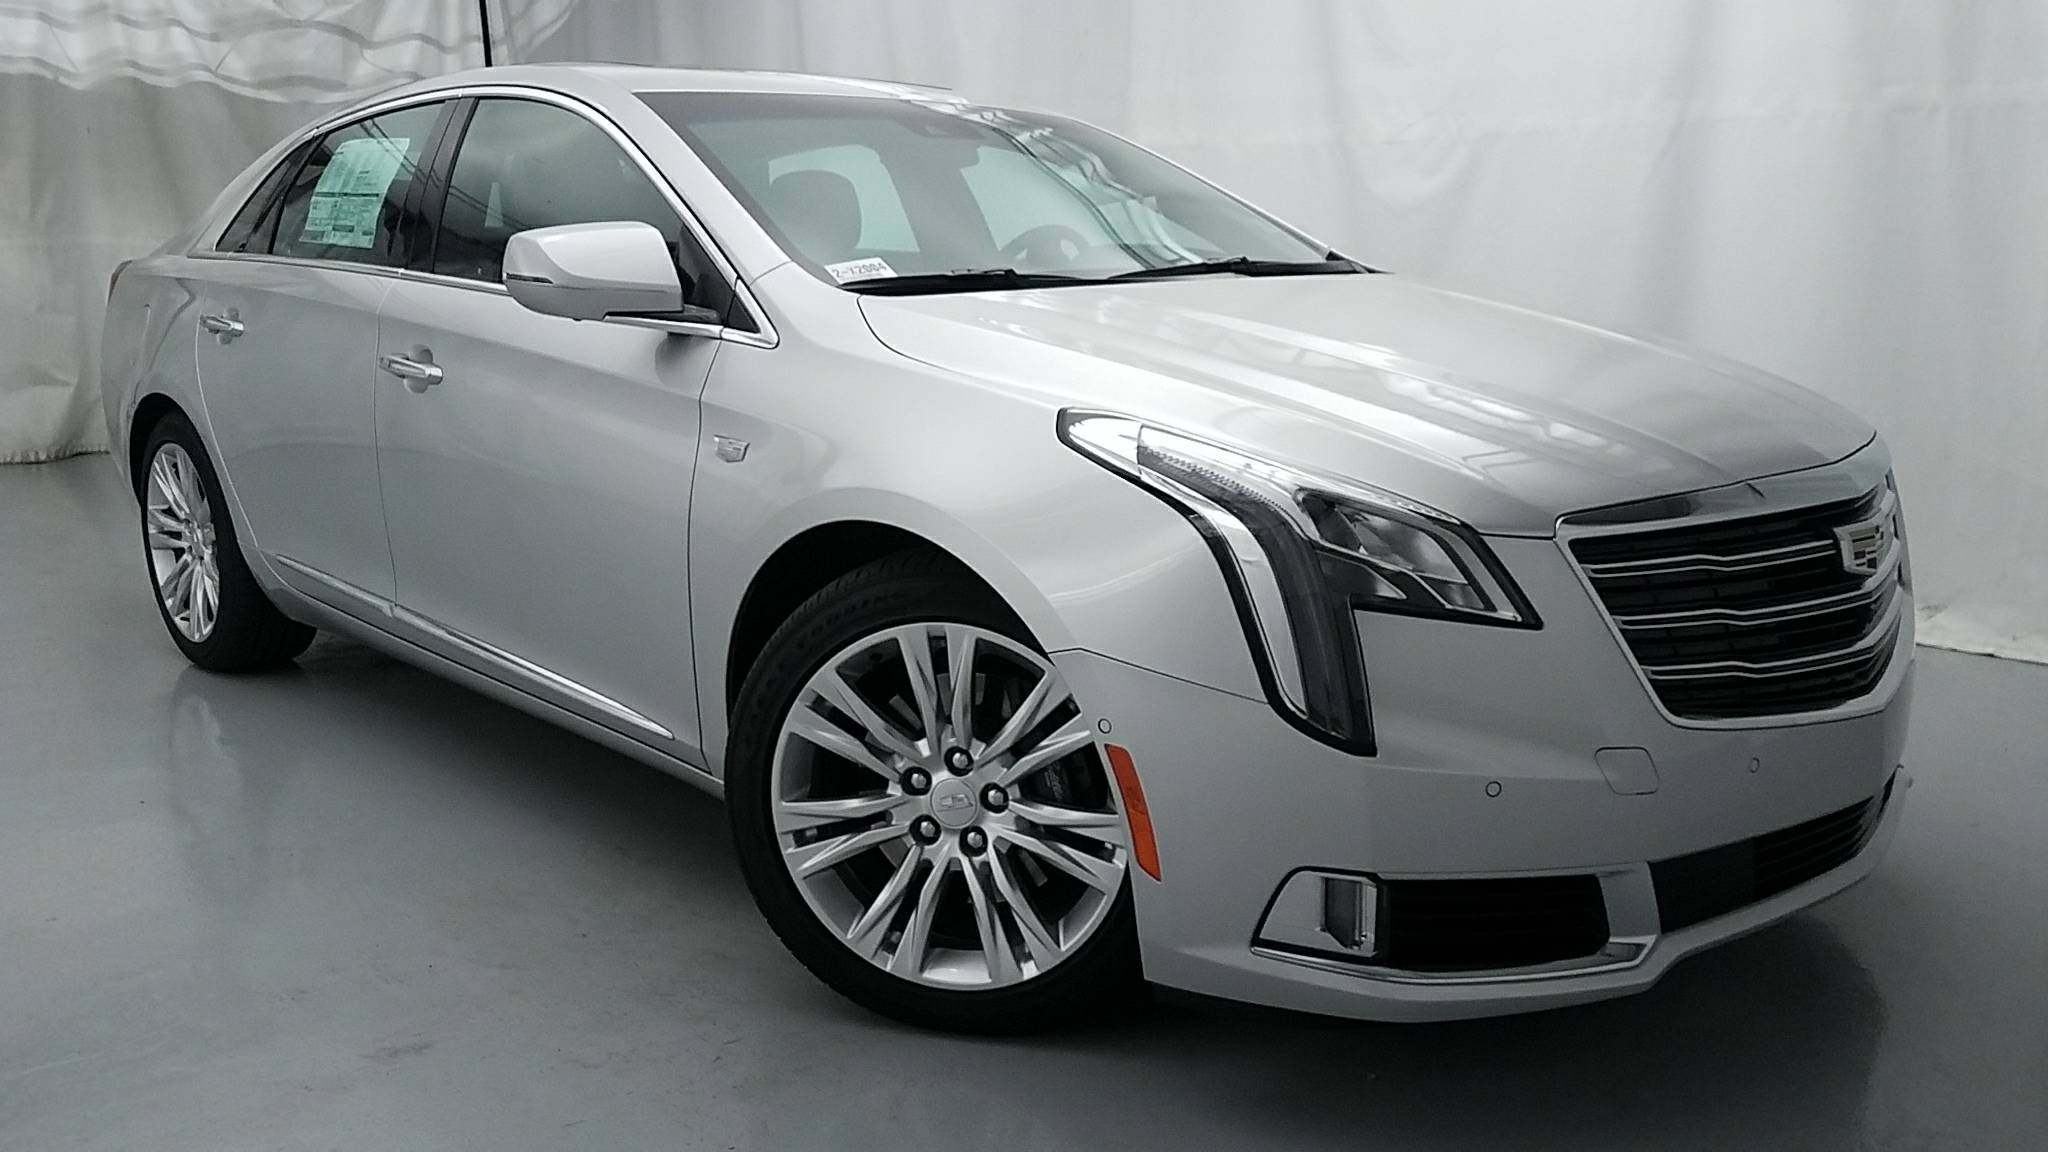 xts cadillac inventory sale auto warner used cars luxury view interstate sales wr for ga